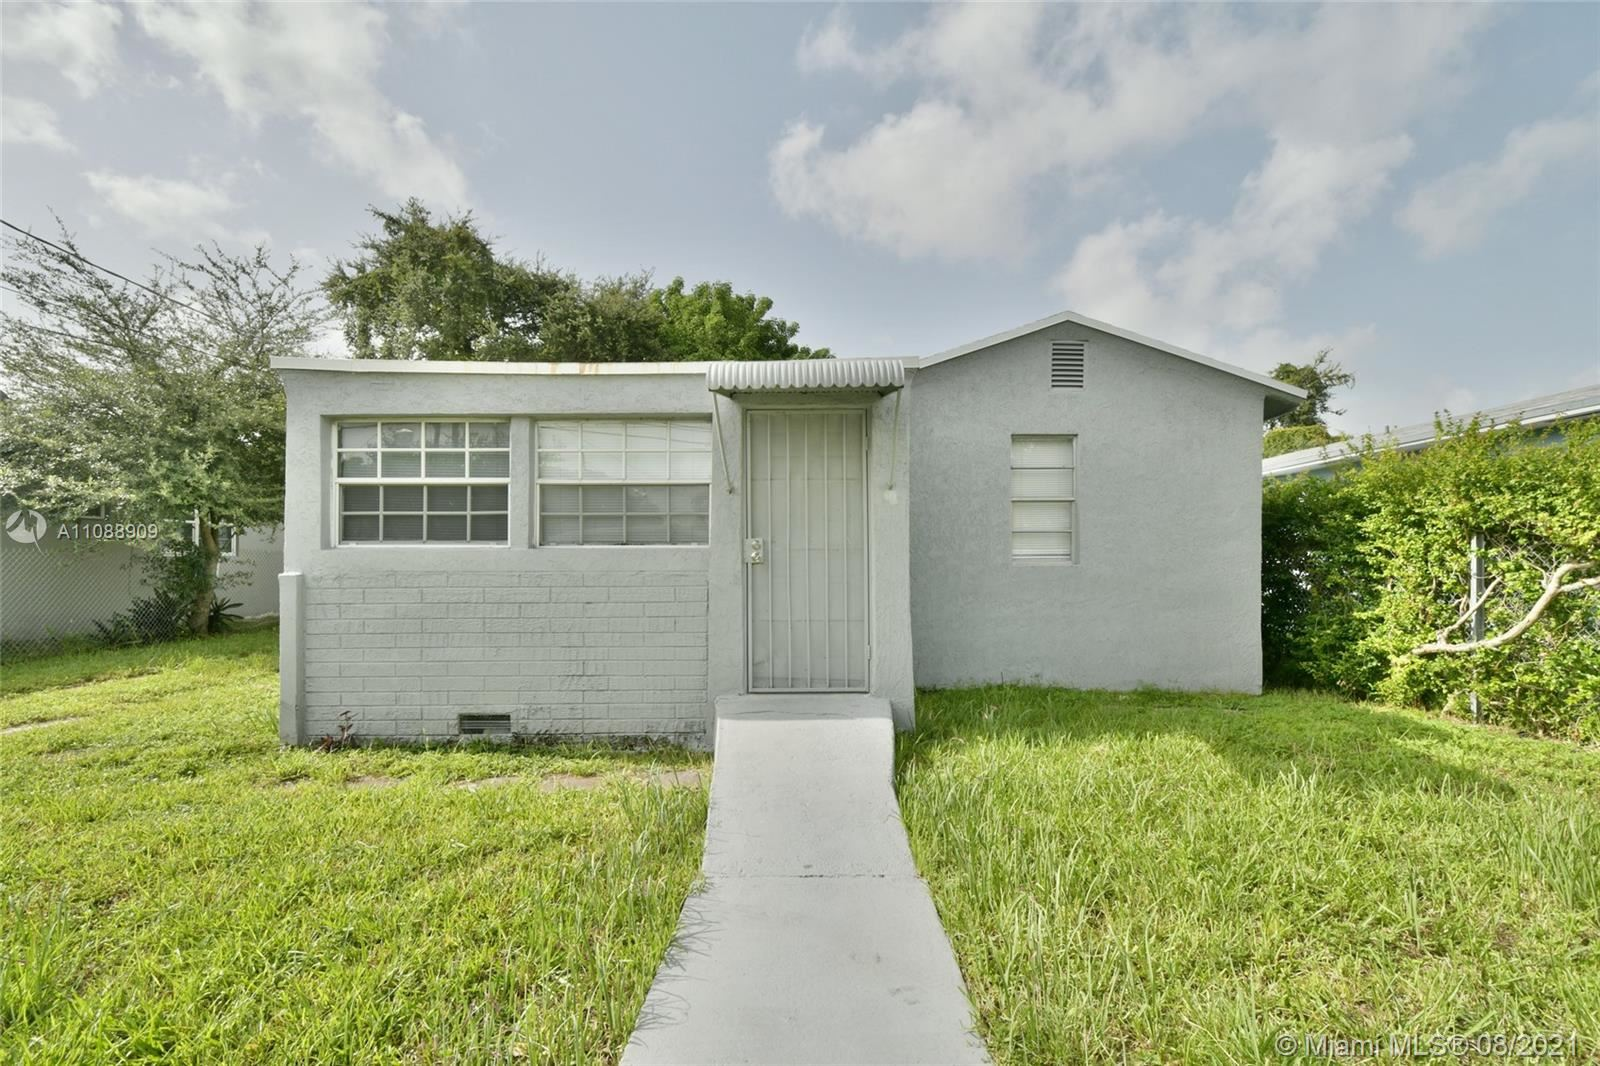 3094 NW 52nd St, Miami, FL 33142 - #: A11088909